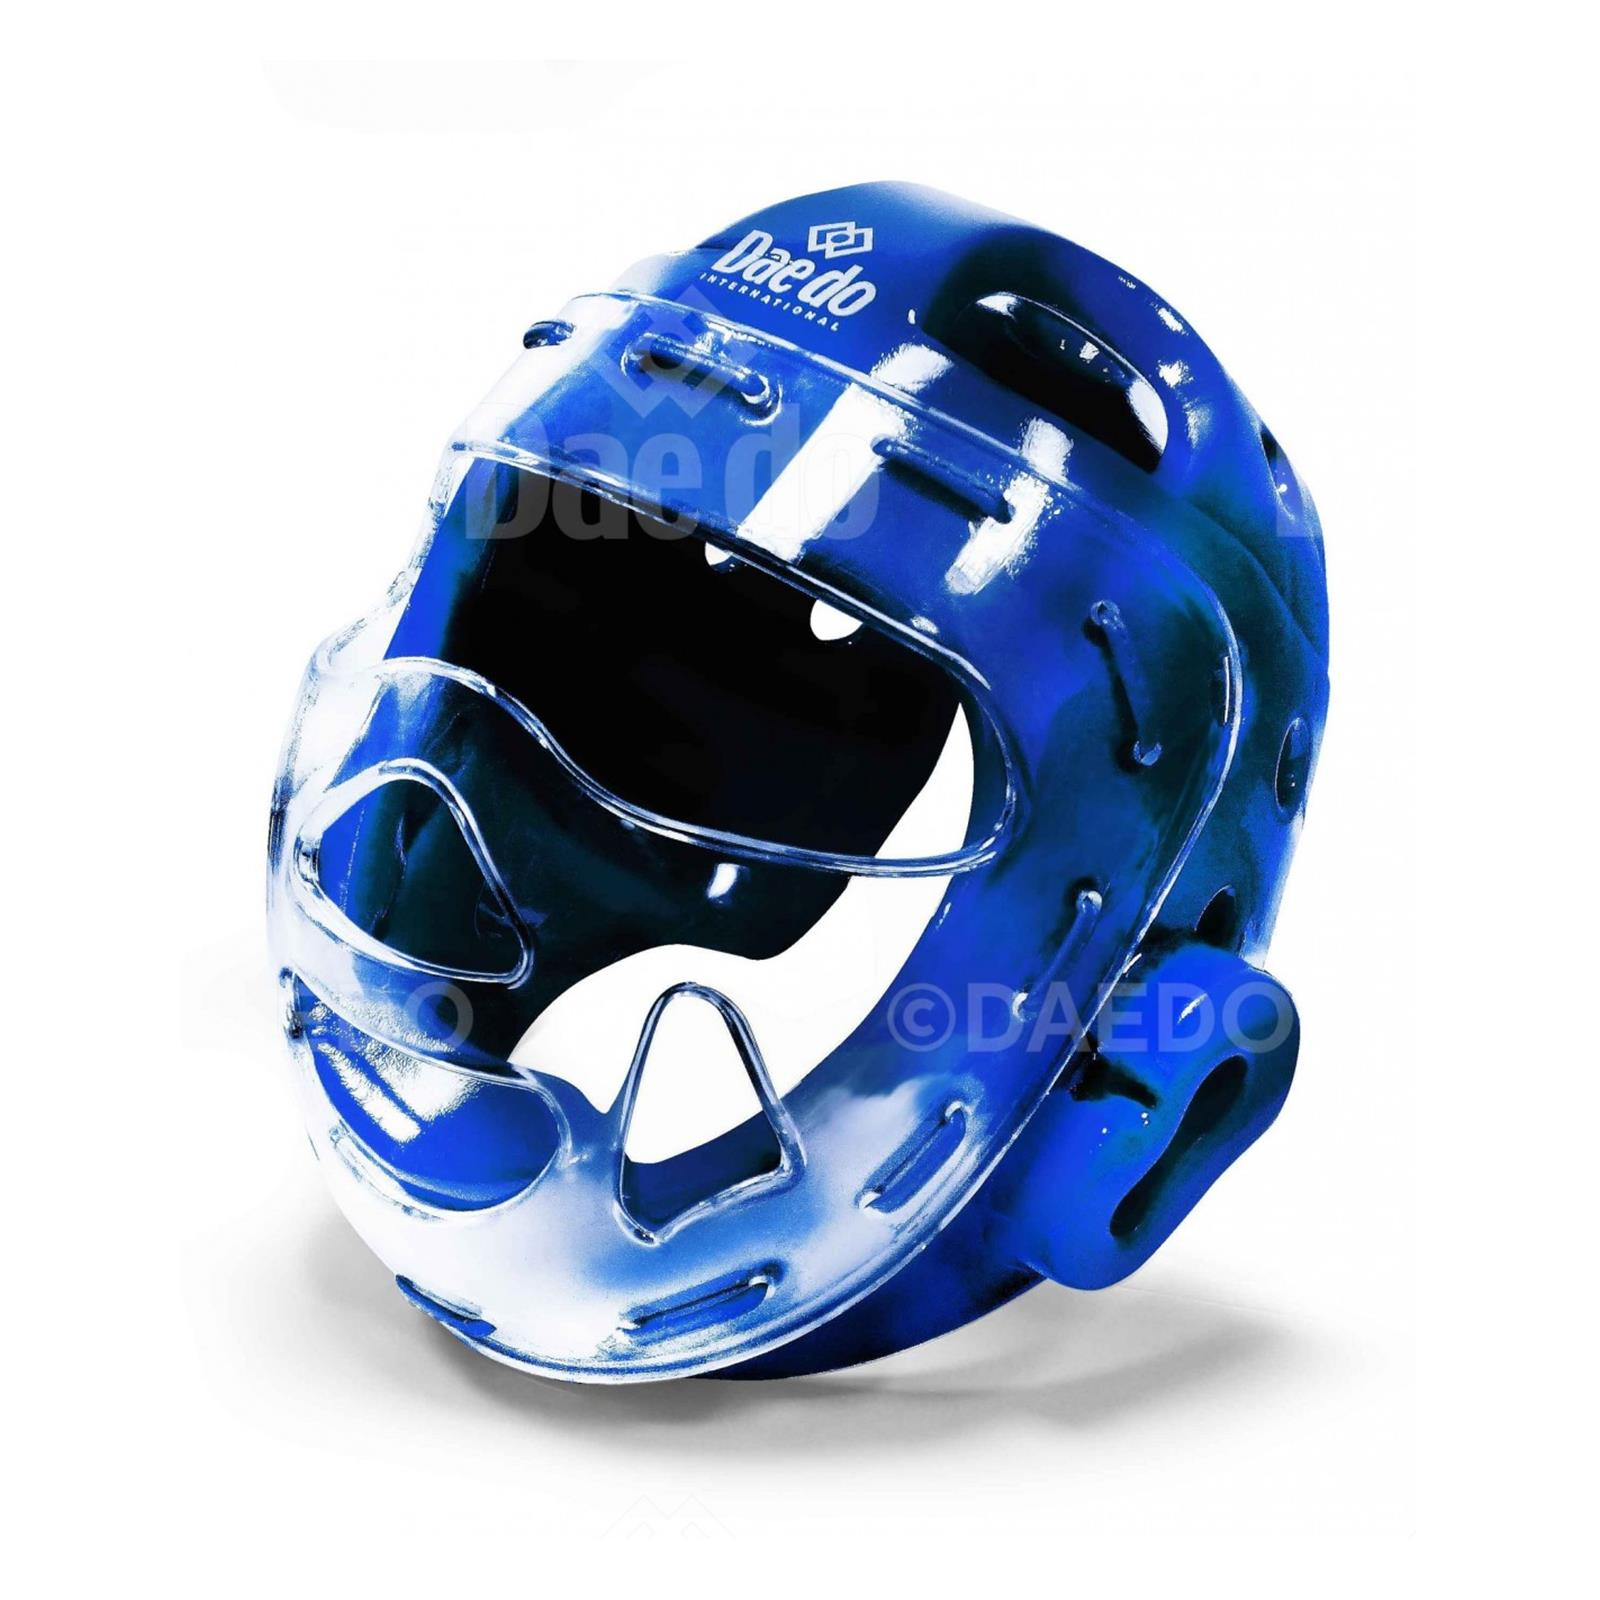 Dae Do Casco con Visiera WT Royal (M - AZZURRO)